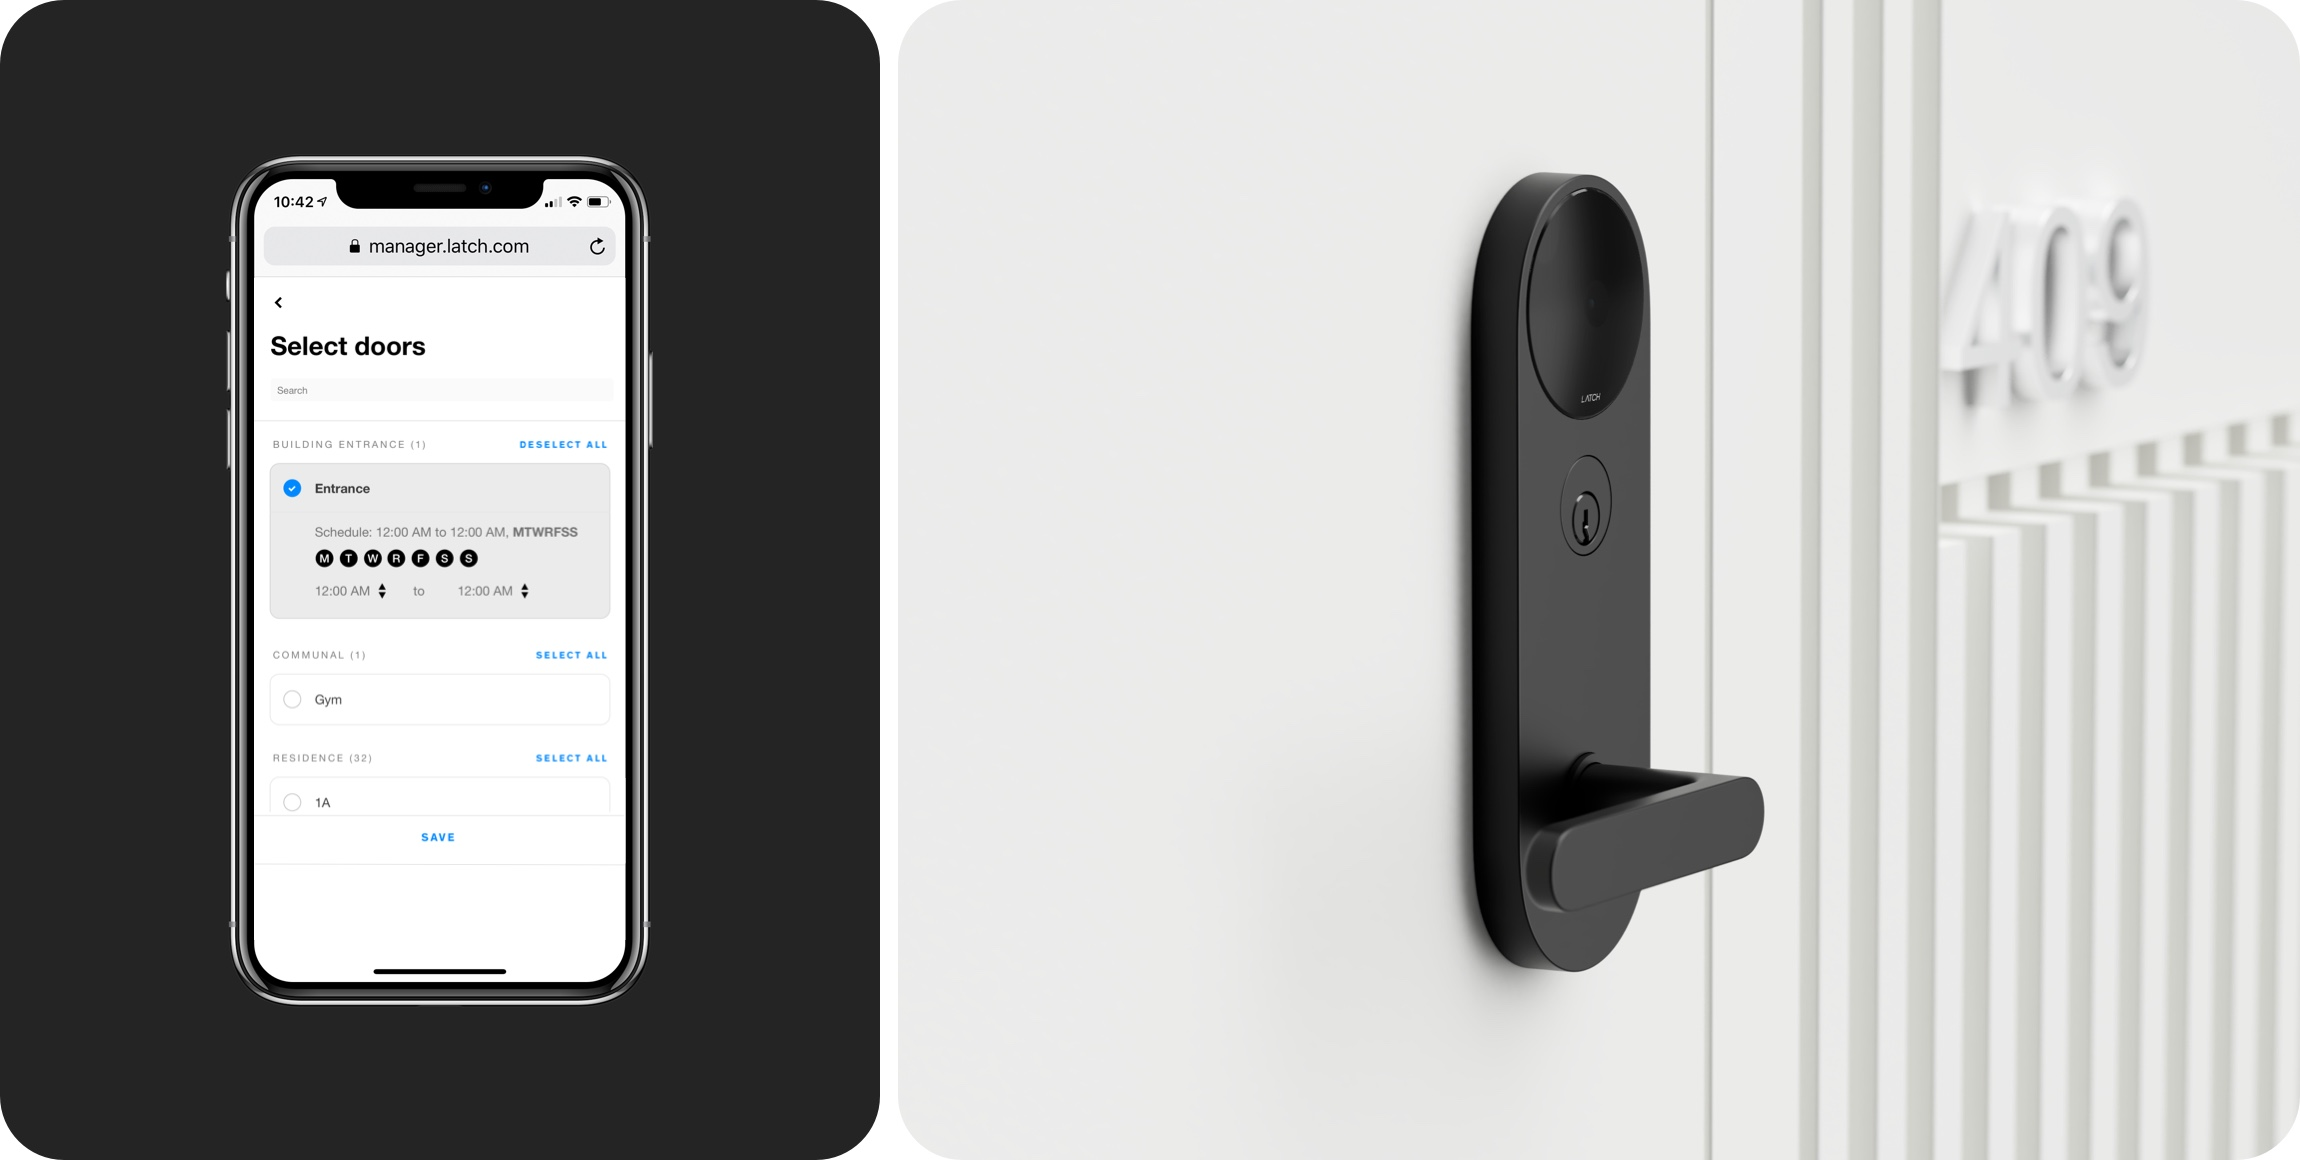 Property managers use Latch Manager to select doors during a resident lock out.